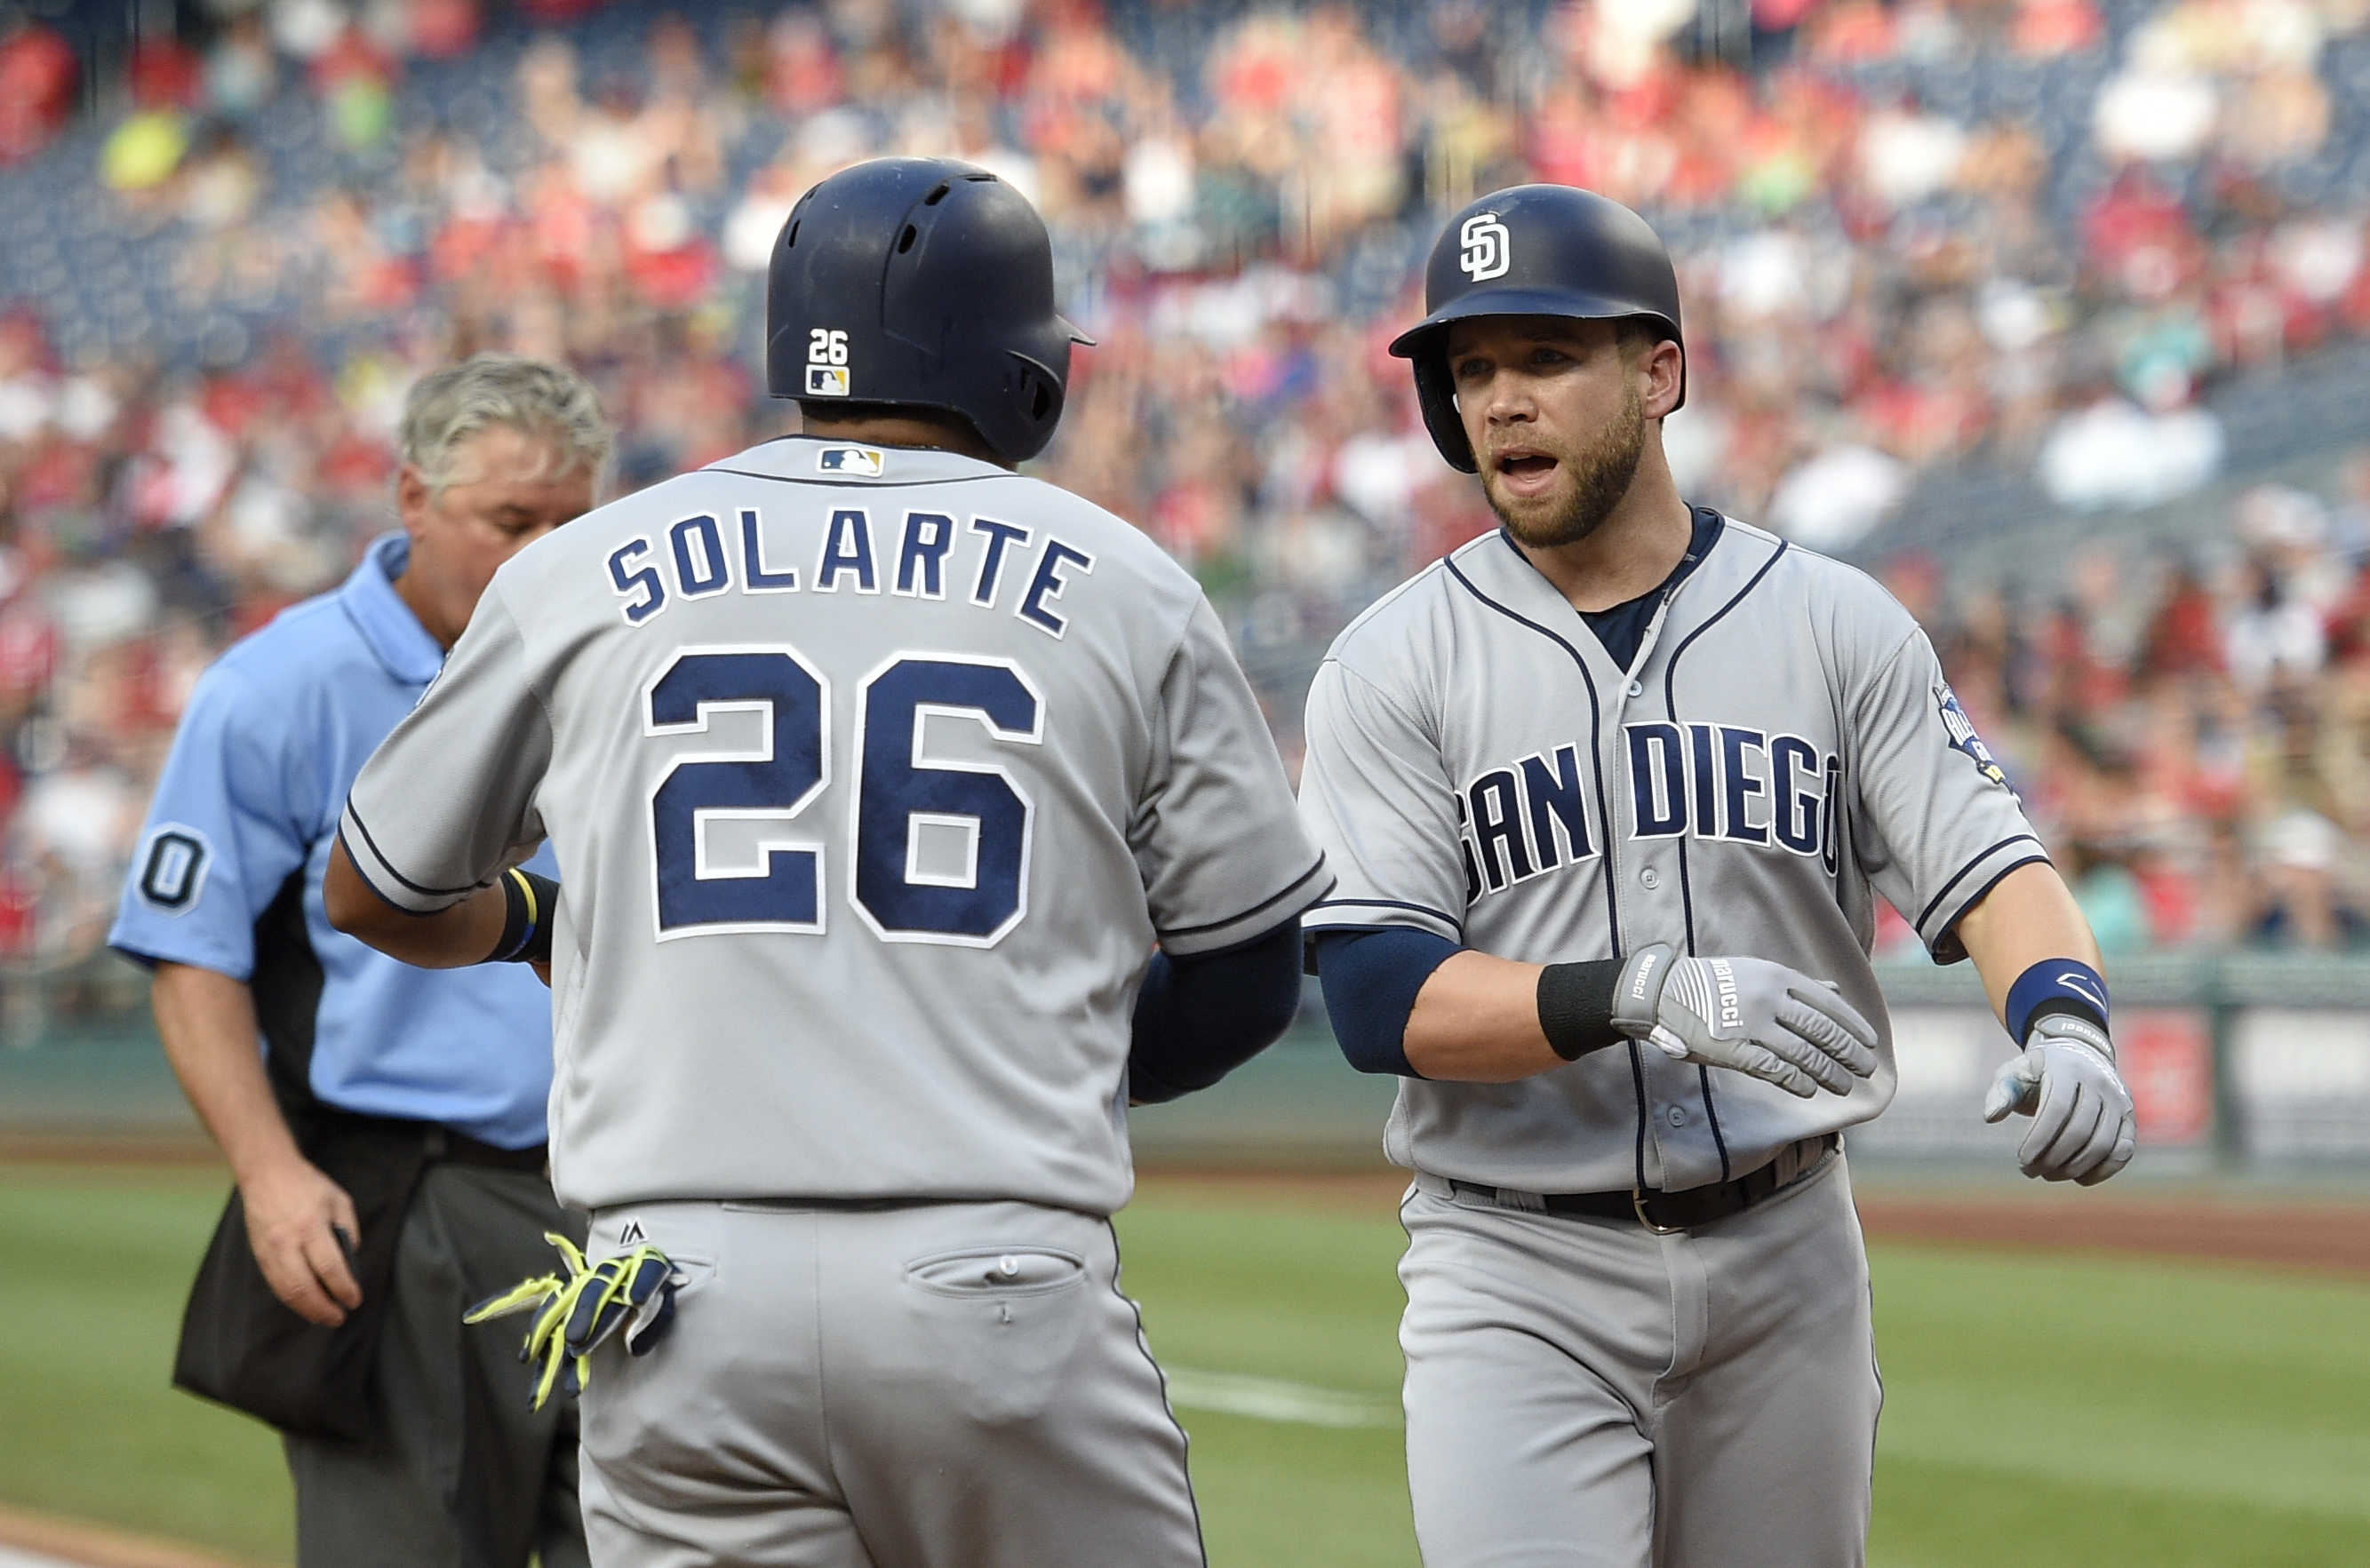 San Diego Padres second baseman Ryan Schimpf, right, celebrates his two-run home run with Yangervis Solarte (26) during the second inning of a baseball game against the Washington Nationals, Saturday, July 23, 2016, in Washington. (AP Photo/Nick Wass)